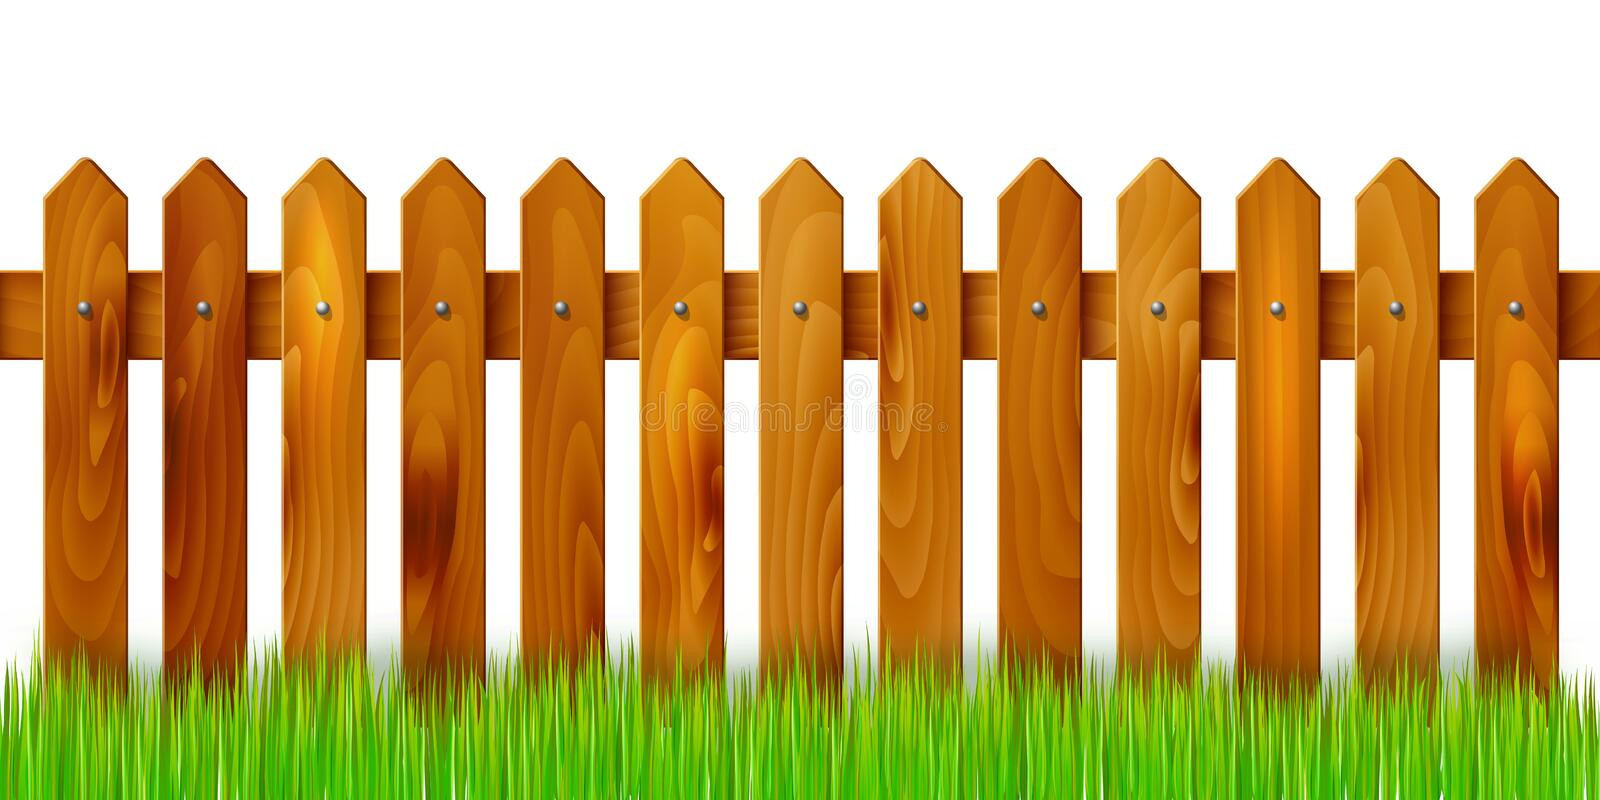 Wooden Fence And Grass Isolated On White Background